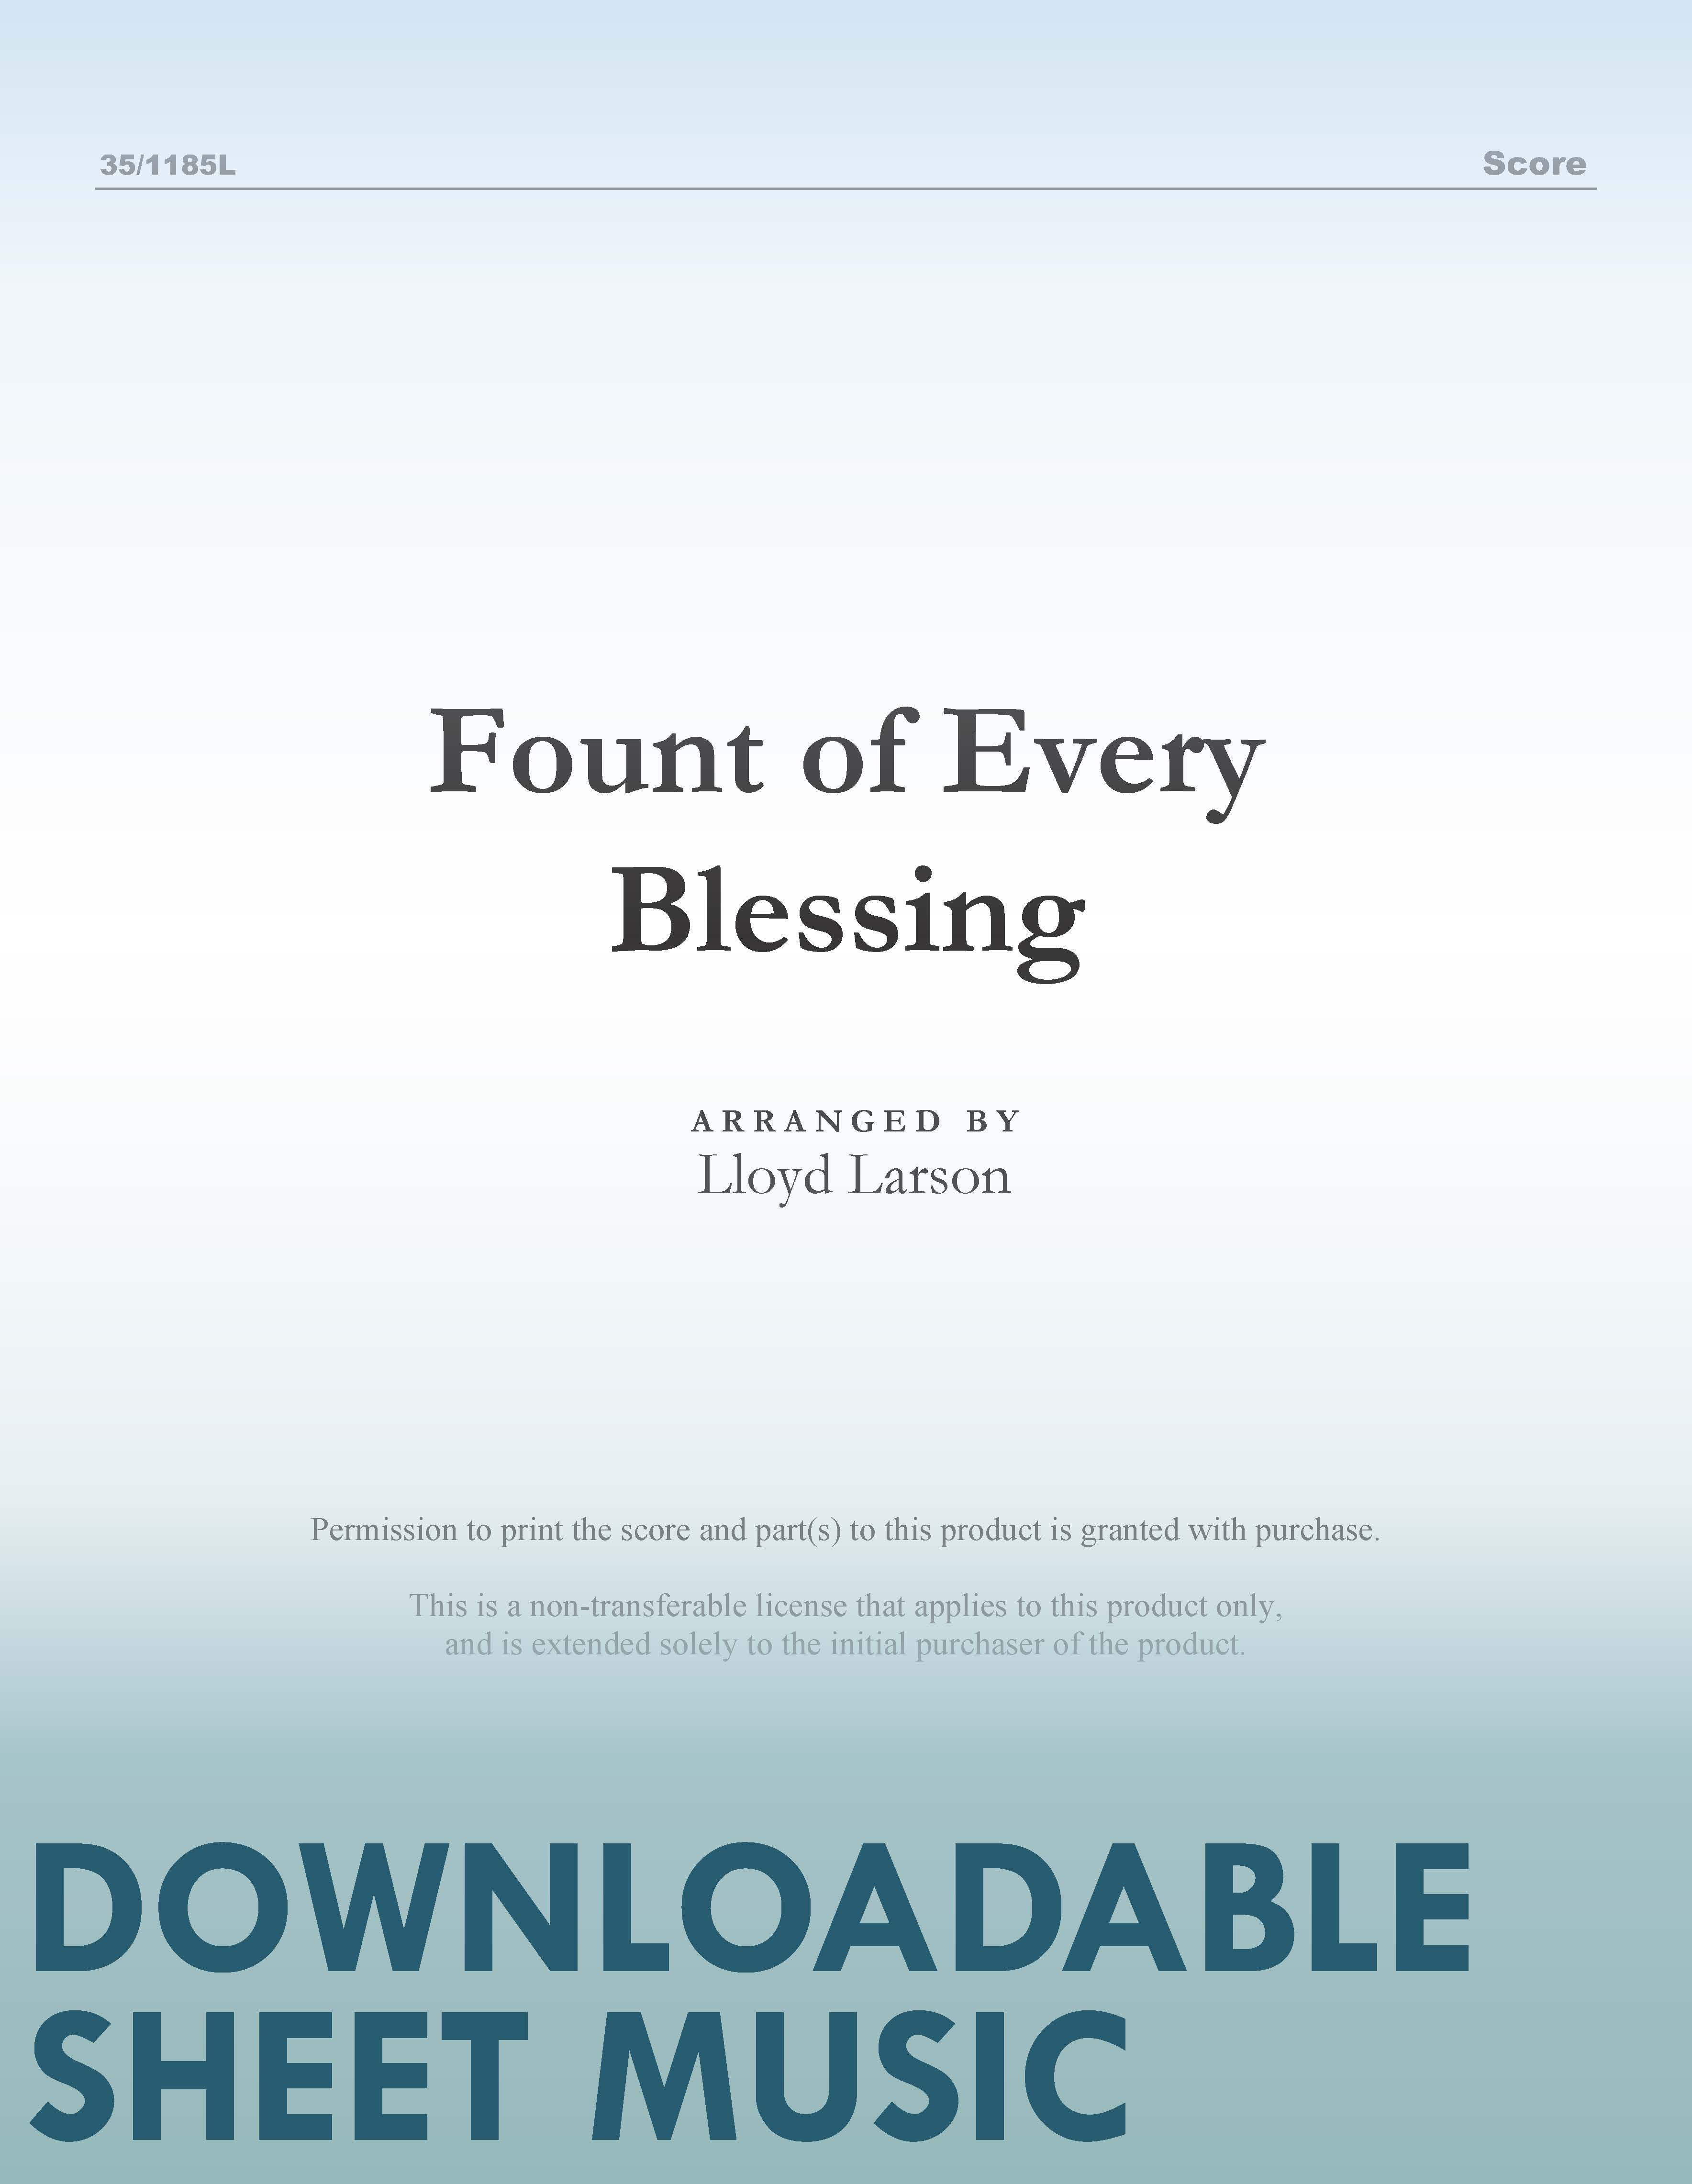 Fount of Every Blessing (Digital Delivery)